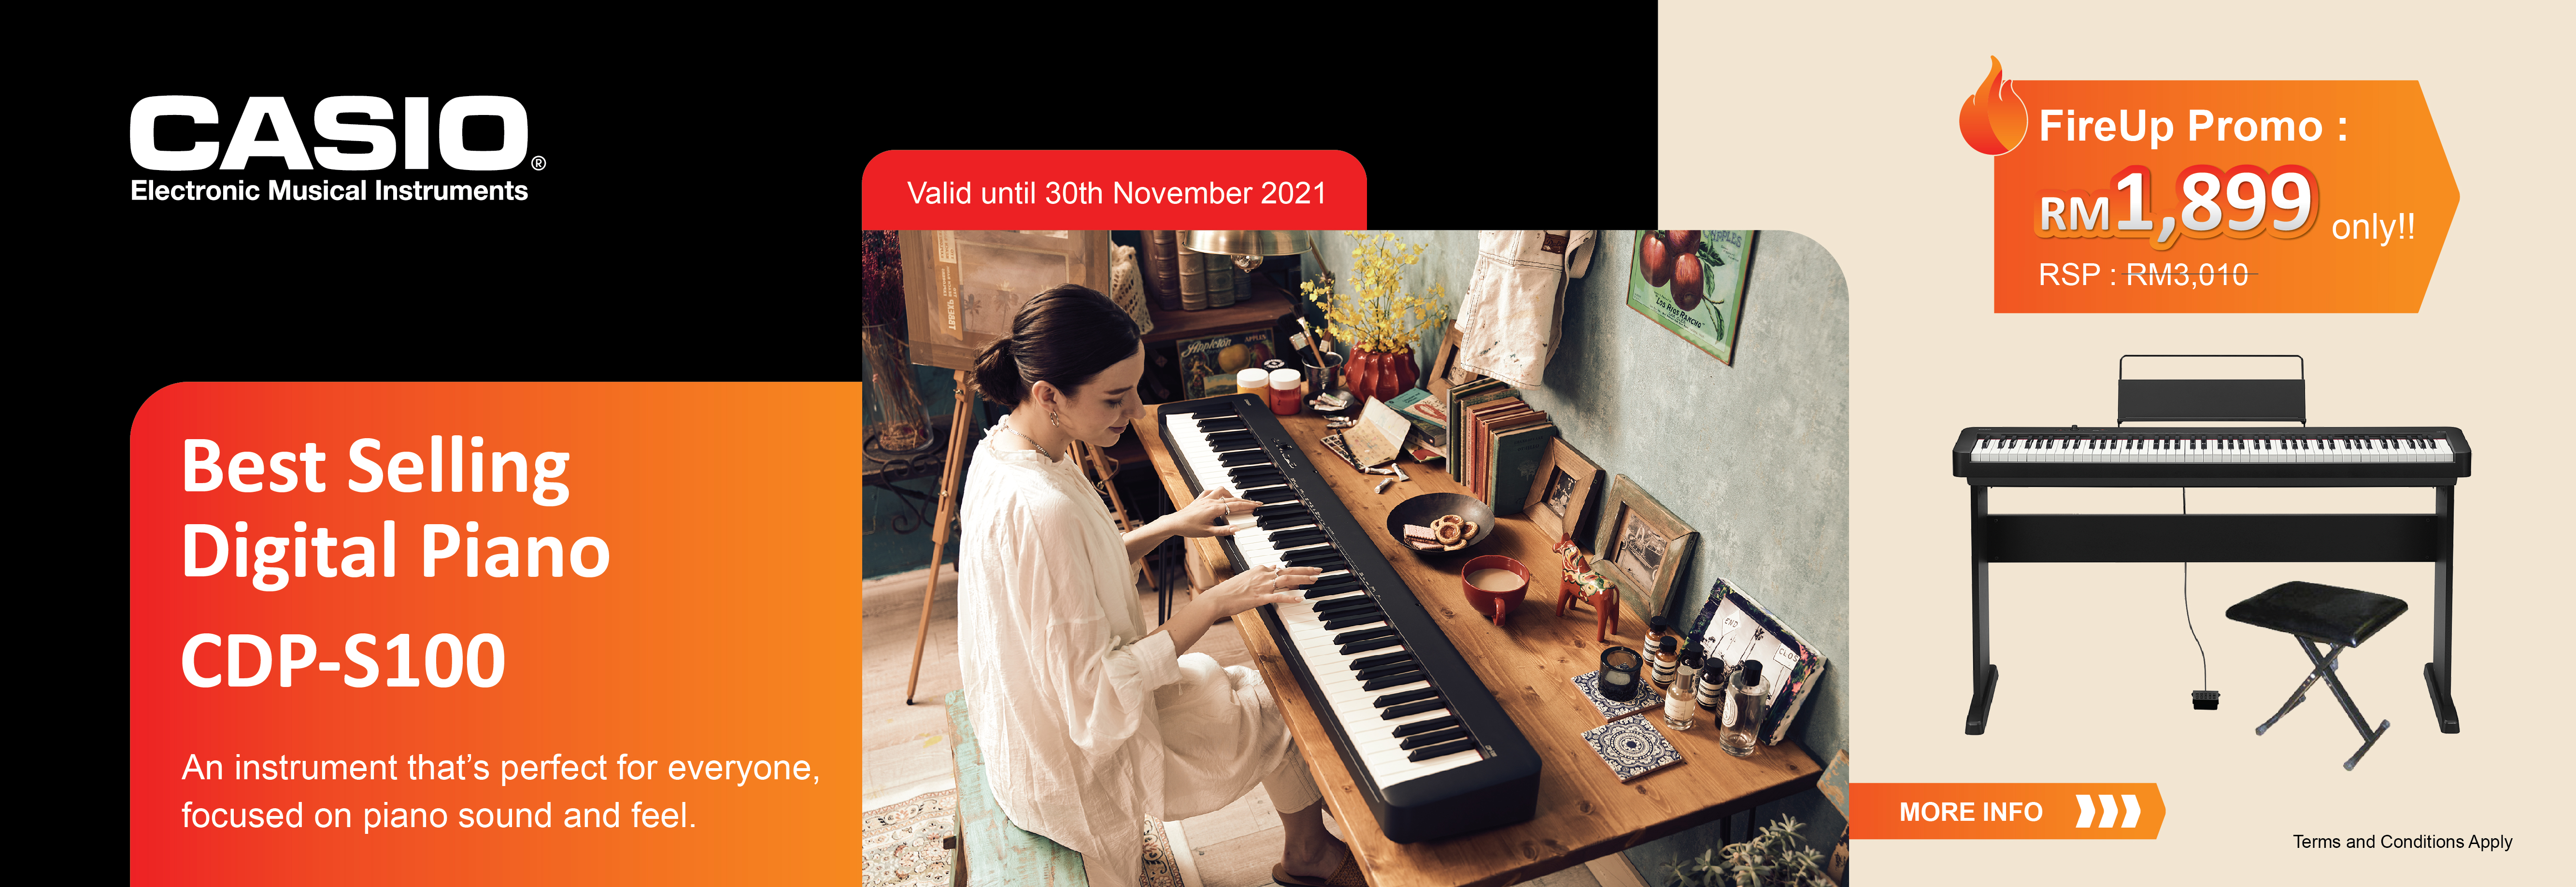 Musical Instruments-CDP-S100 FireUp Promo